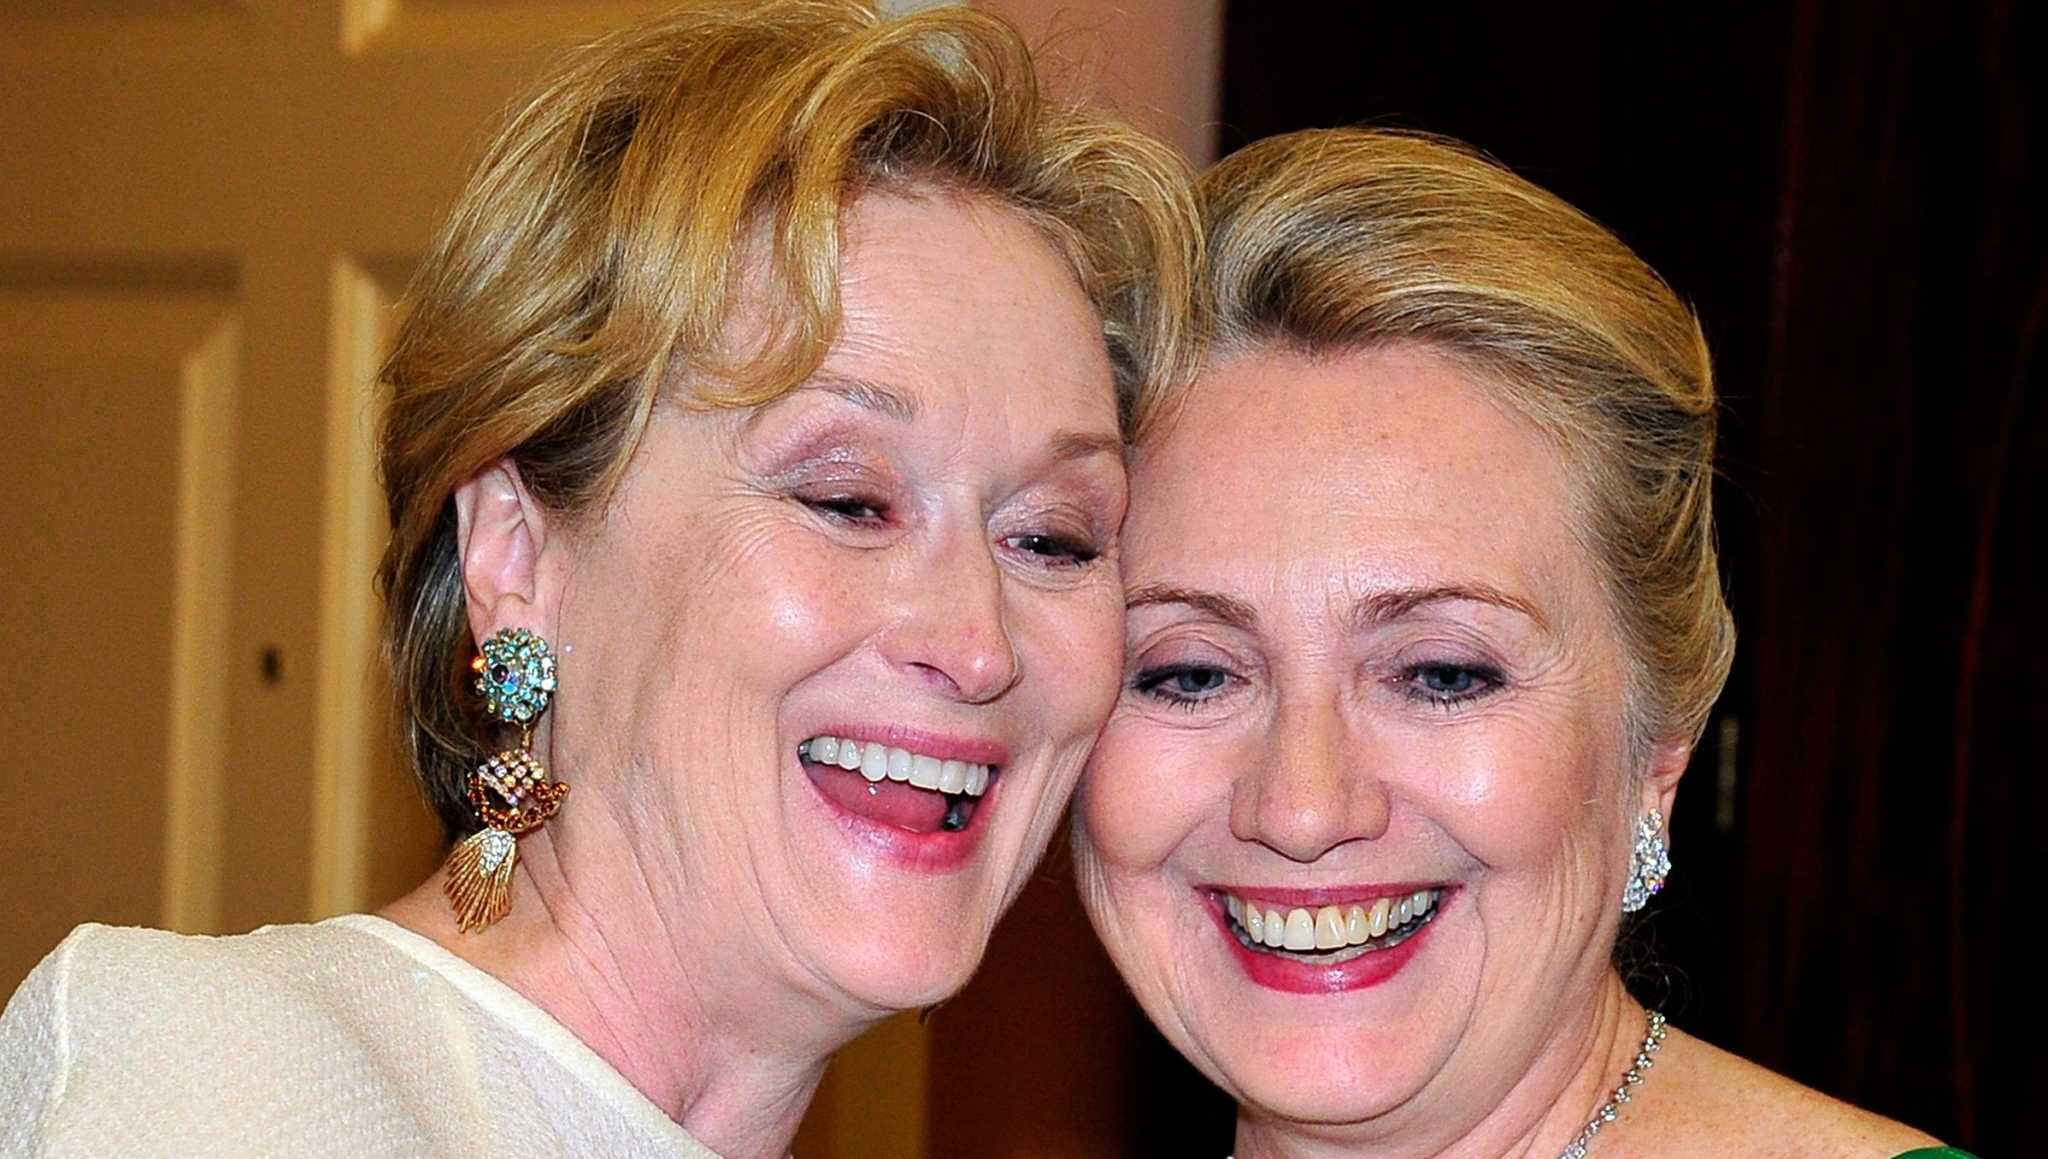 Meryl Streep and Hillary Clinton